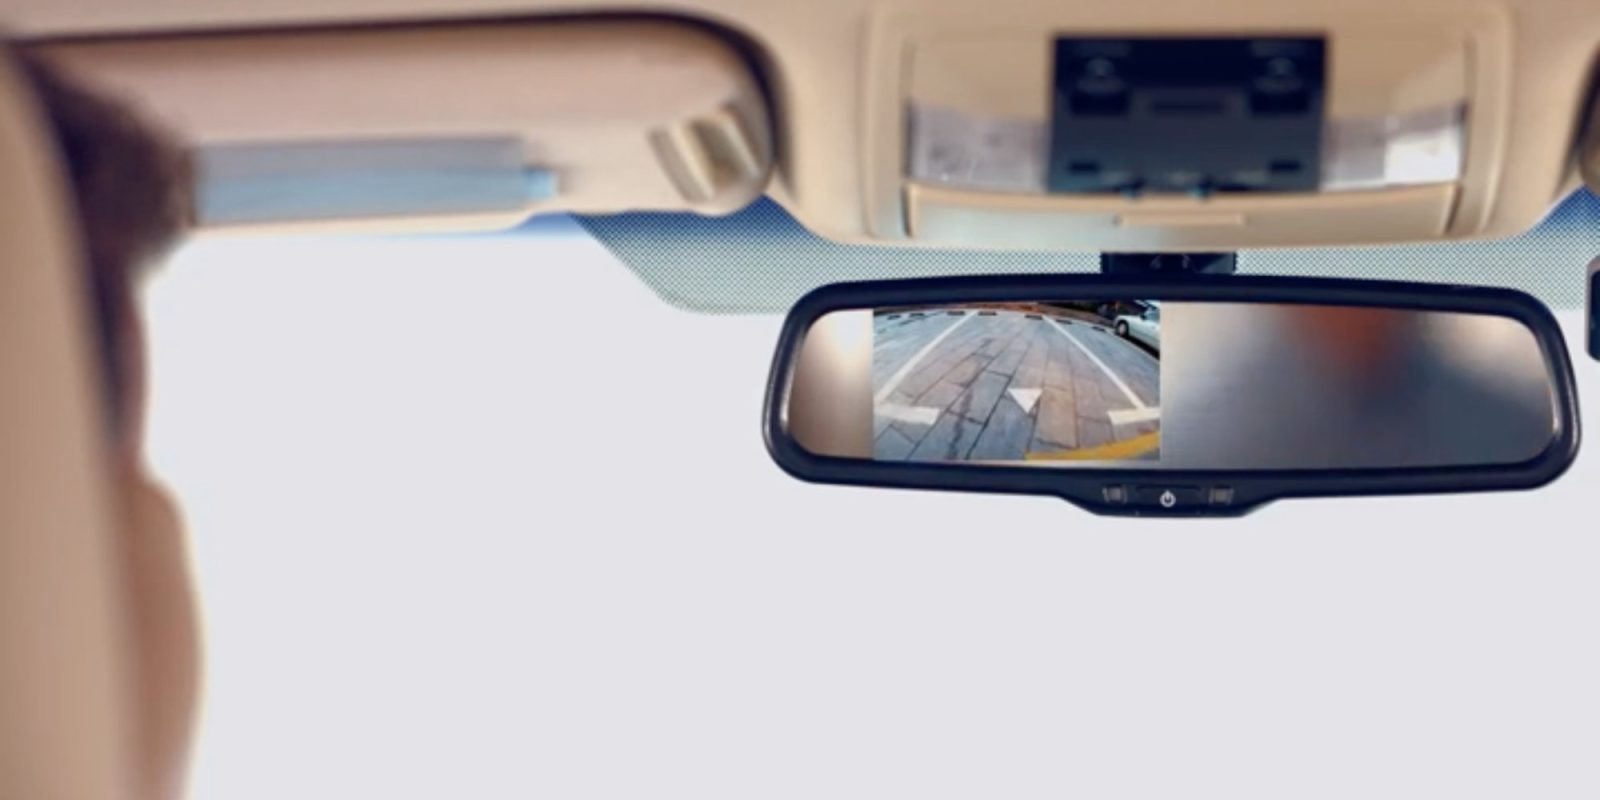 This kit adds a backup camera to your rear view mirror for $91.50 (Save 35%)